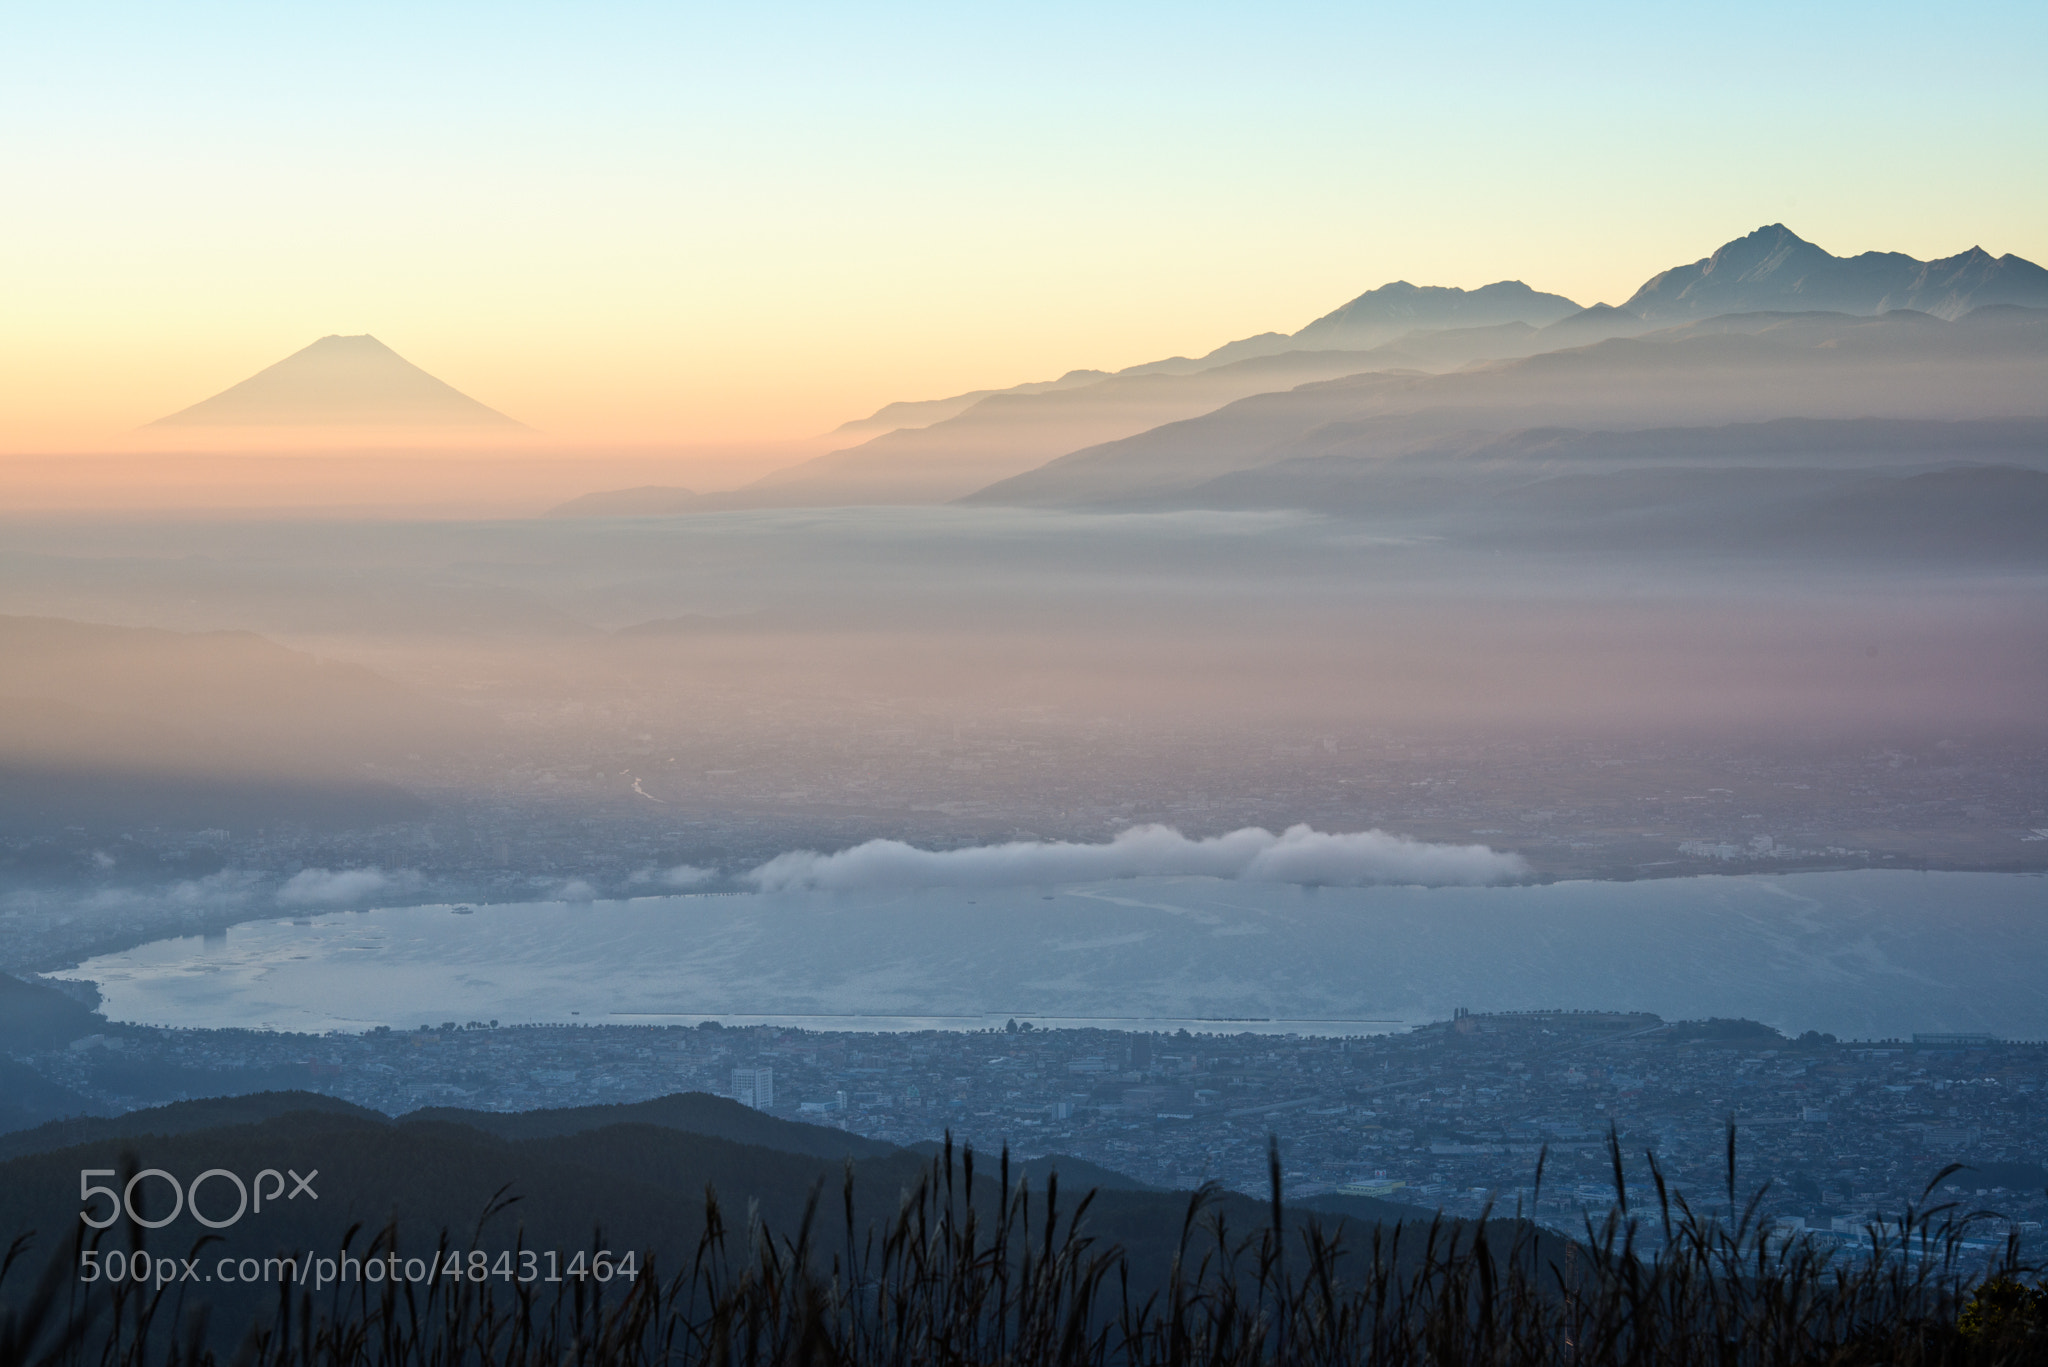 Photograph Morning light at 5:55am by Hidetoshi Kikuchi on 500px